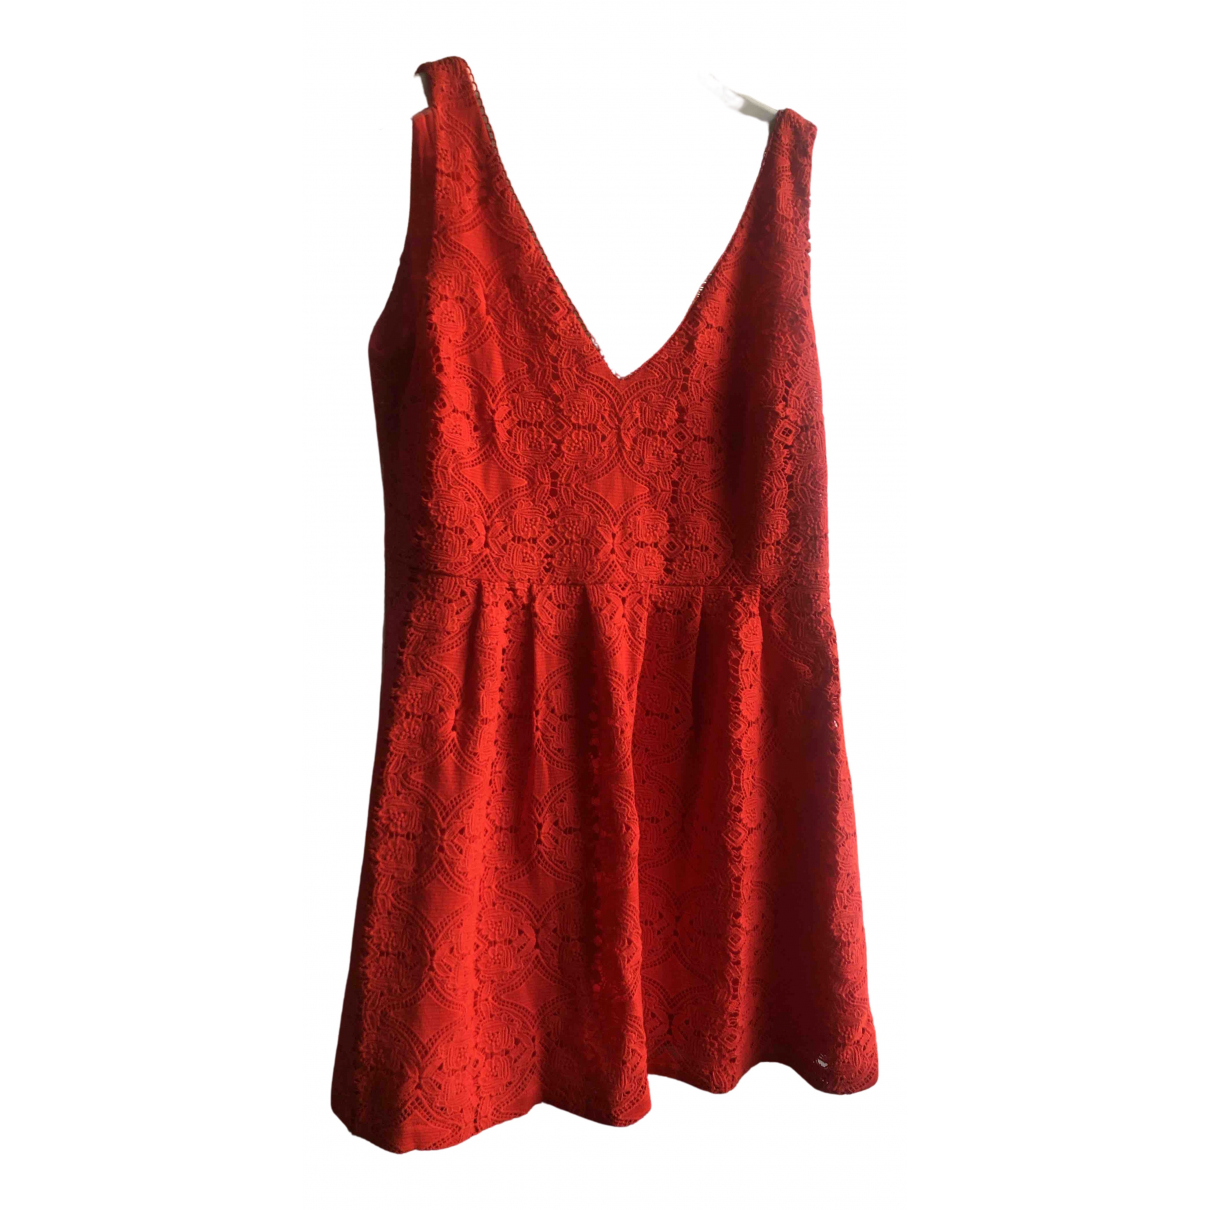 Sézane \N Red Cotton dress for Women 44 FR